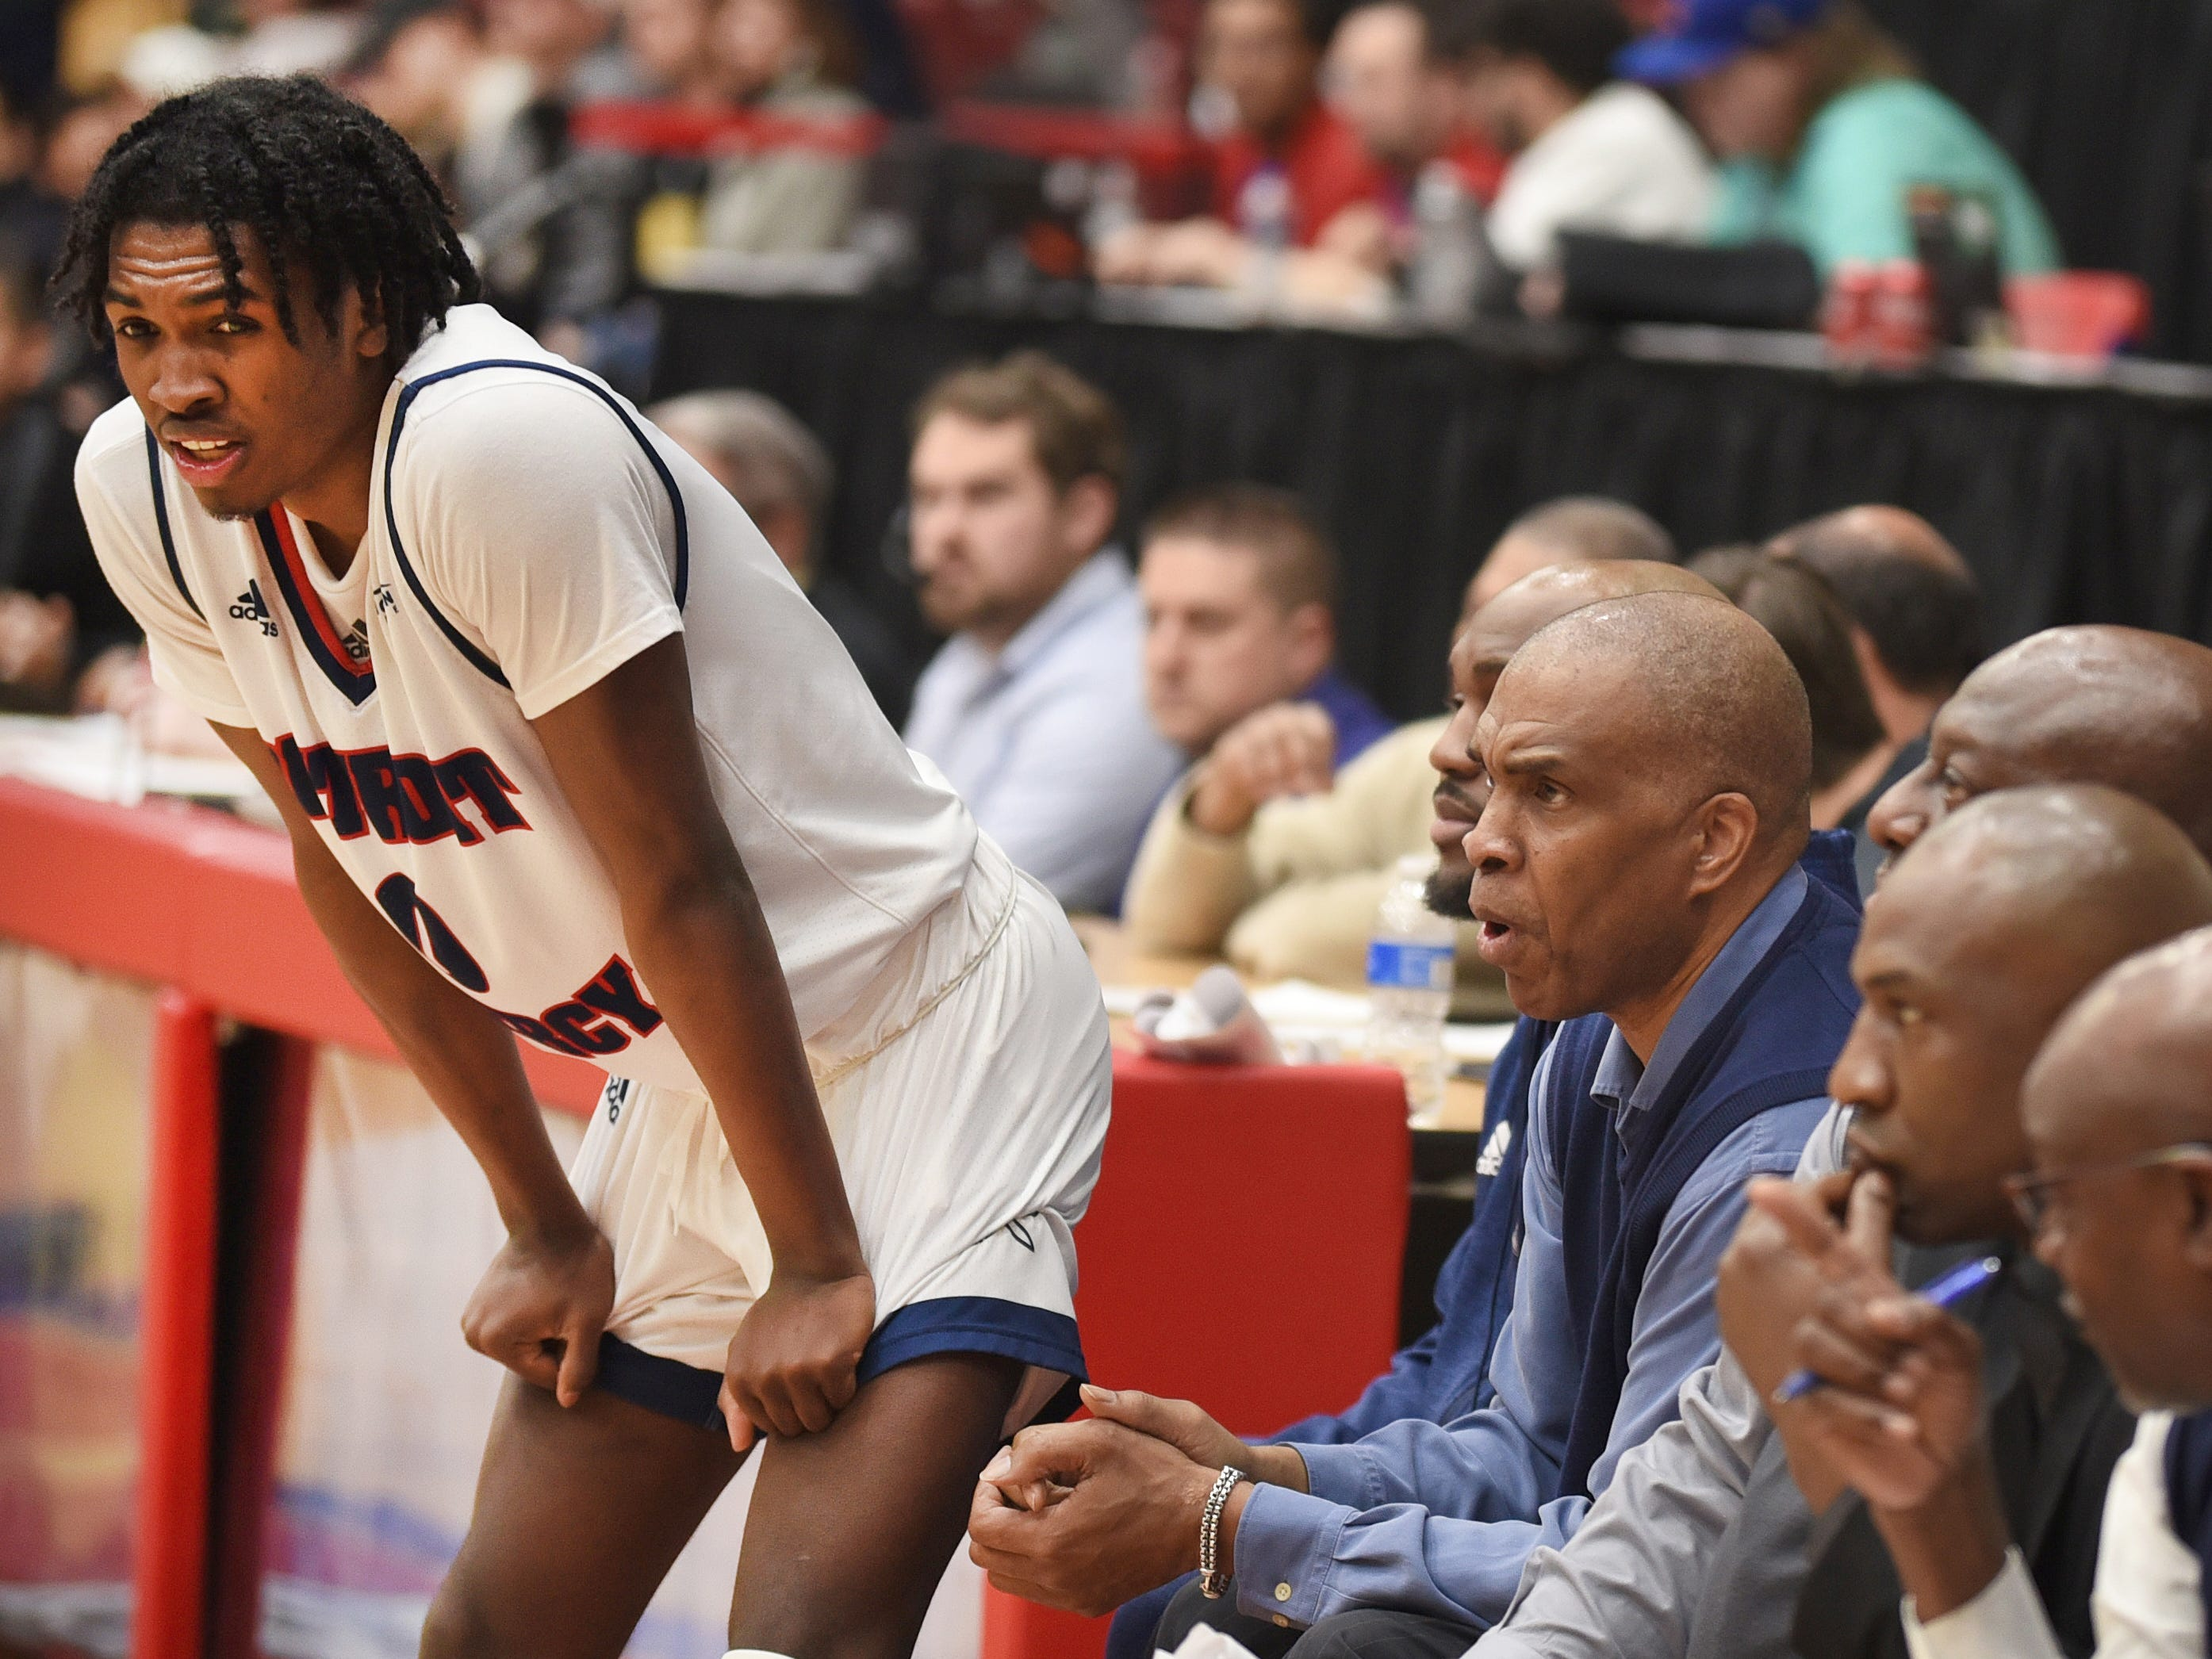 University of Detroit Mercy player Antoine Davis (left) waits to check back into the game with his father U of D head basketball coach Mike Davis (right) looking on.